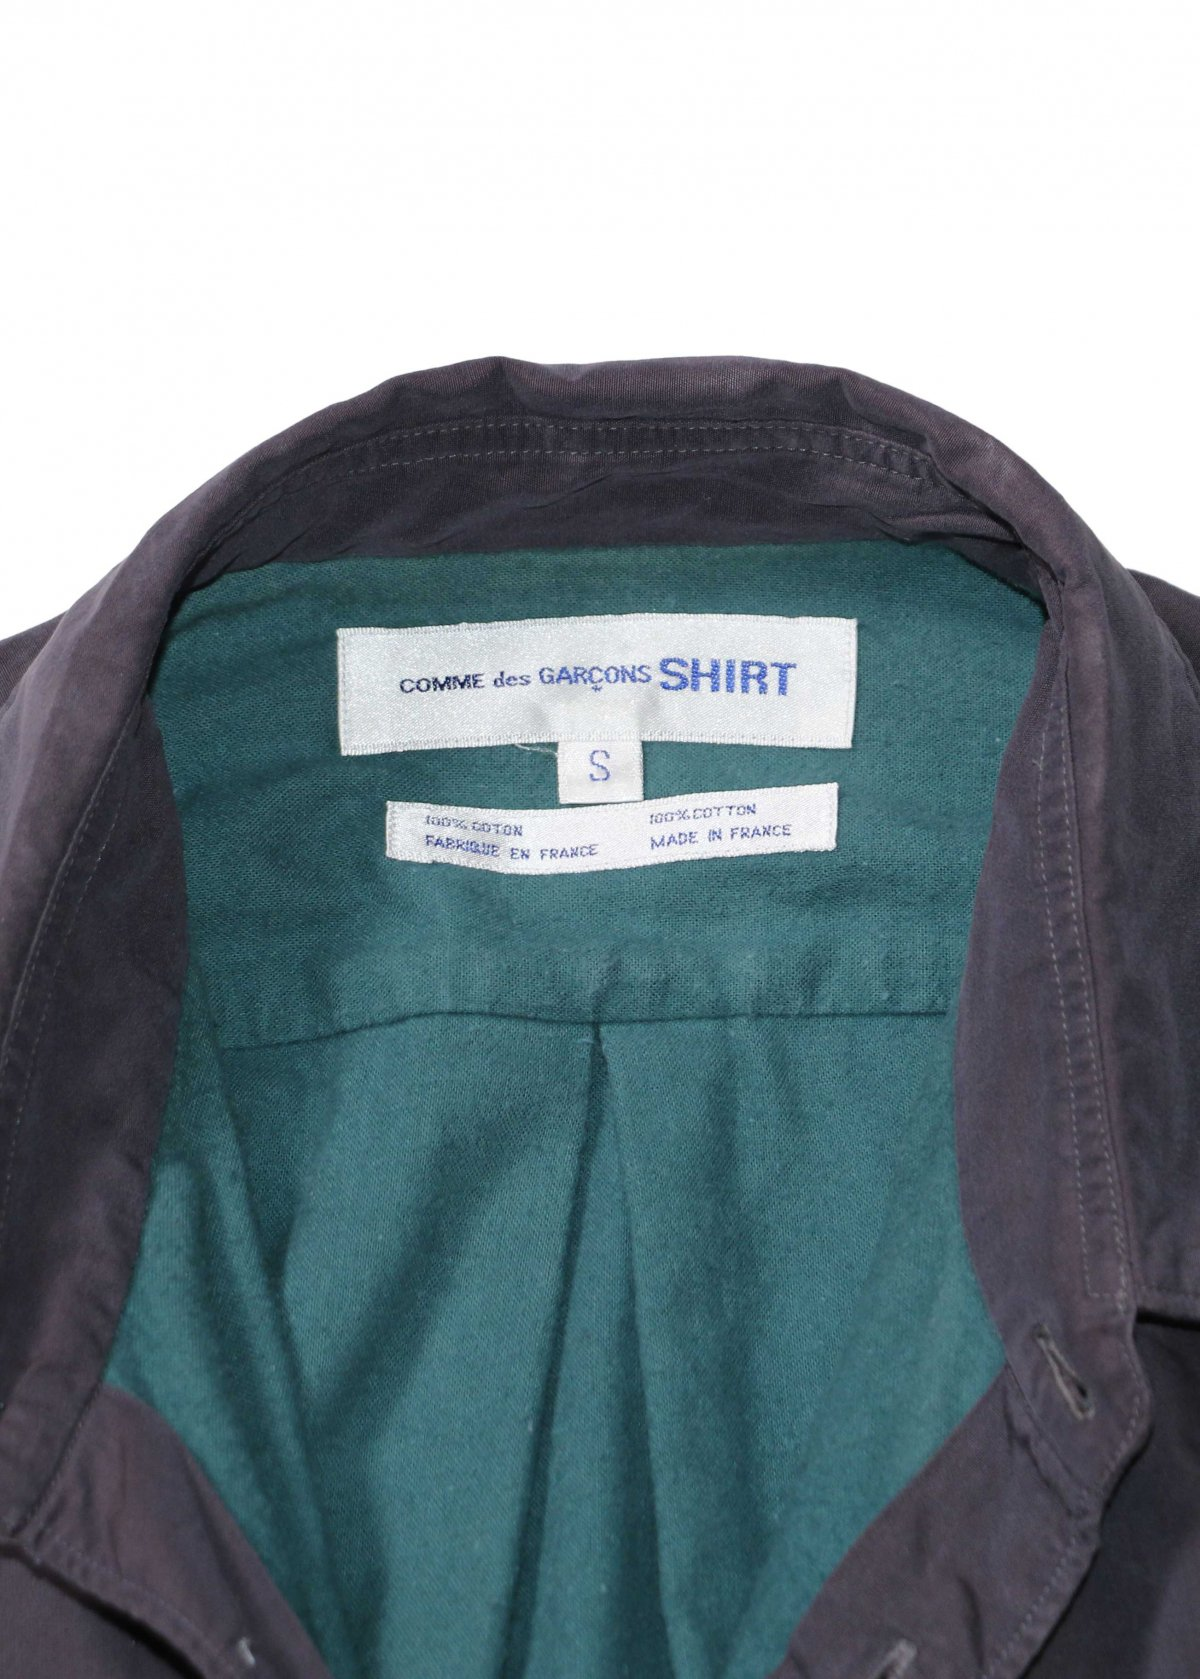 I&I 古着 通販 COMME des GARCONS SHIRT(MADE IN FRANCE) 詳細画像2